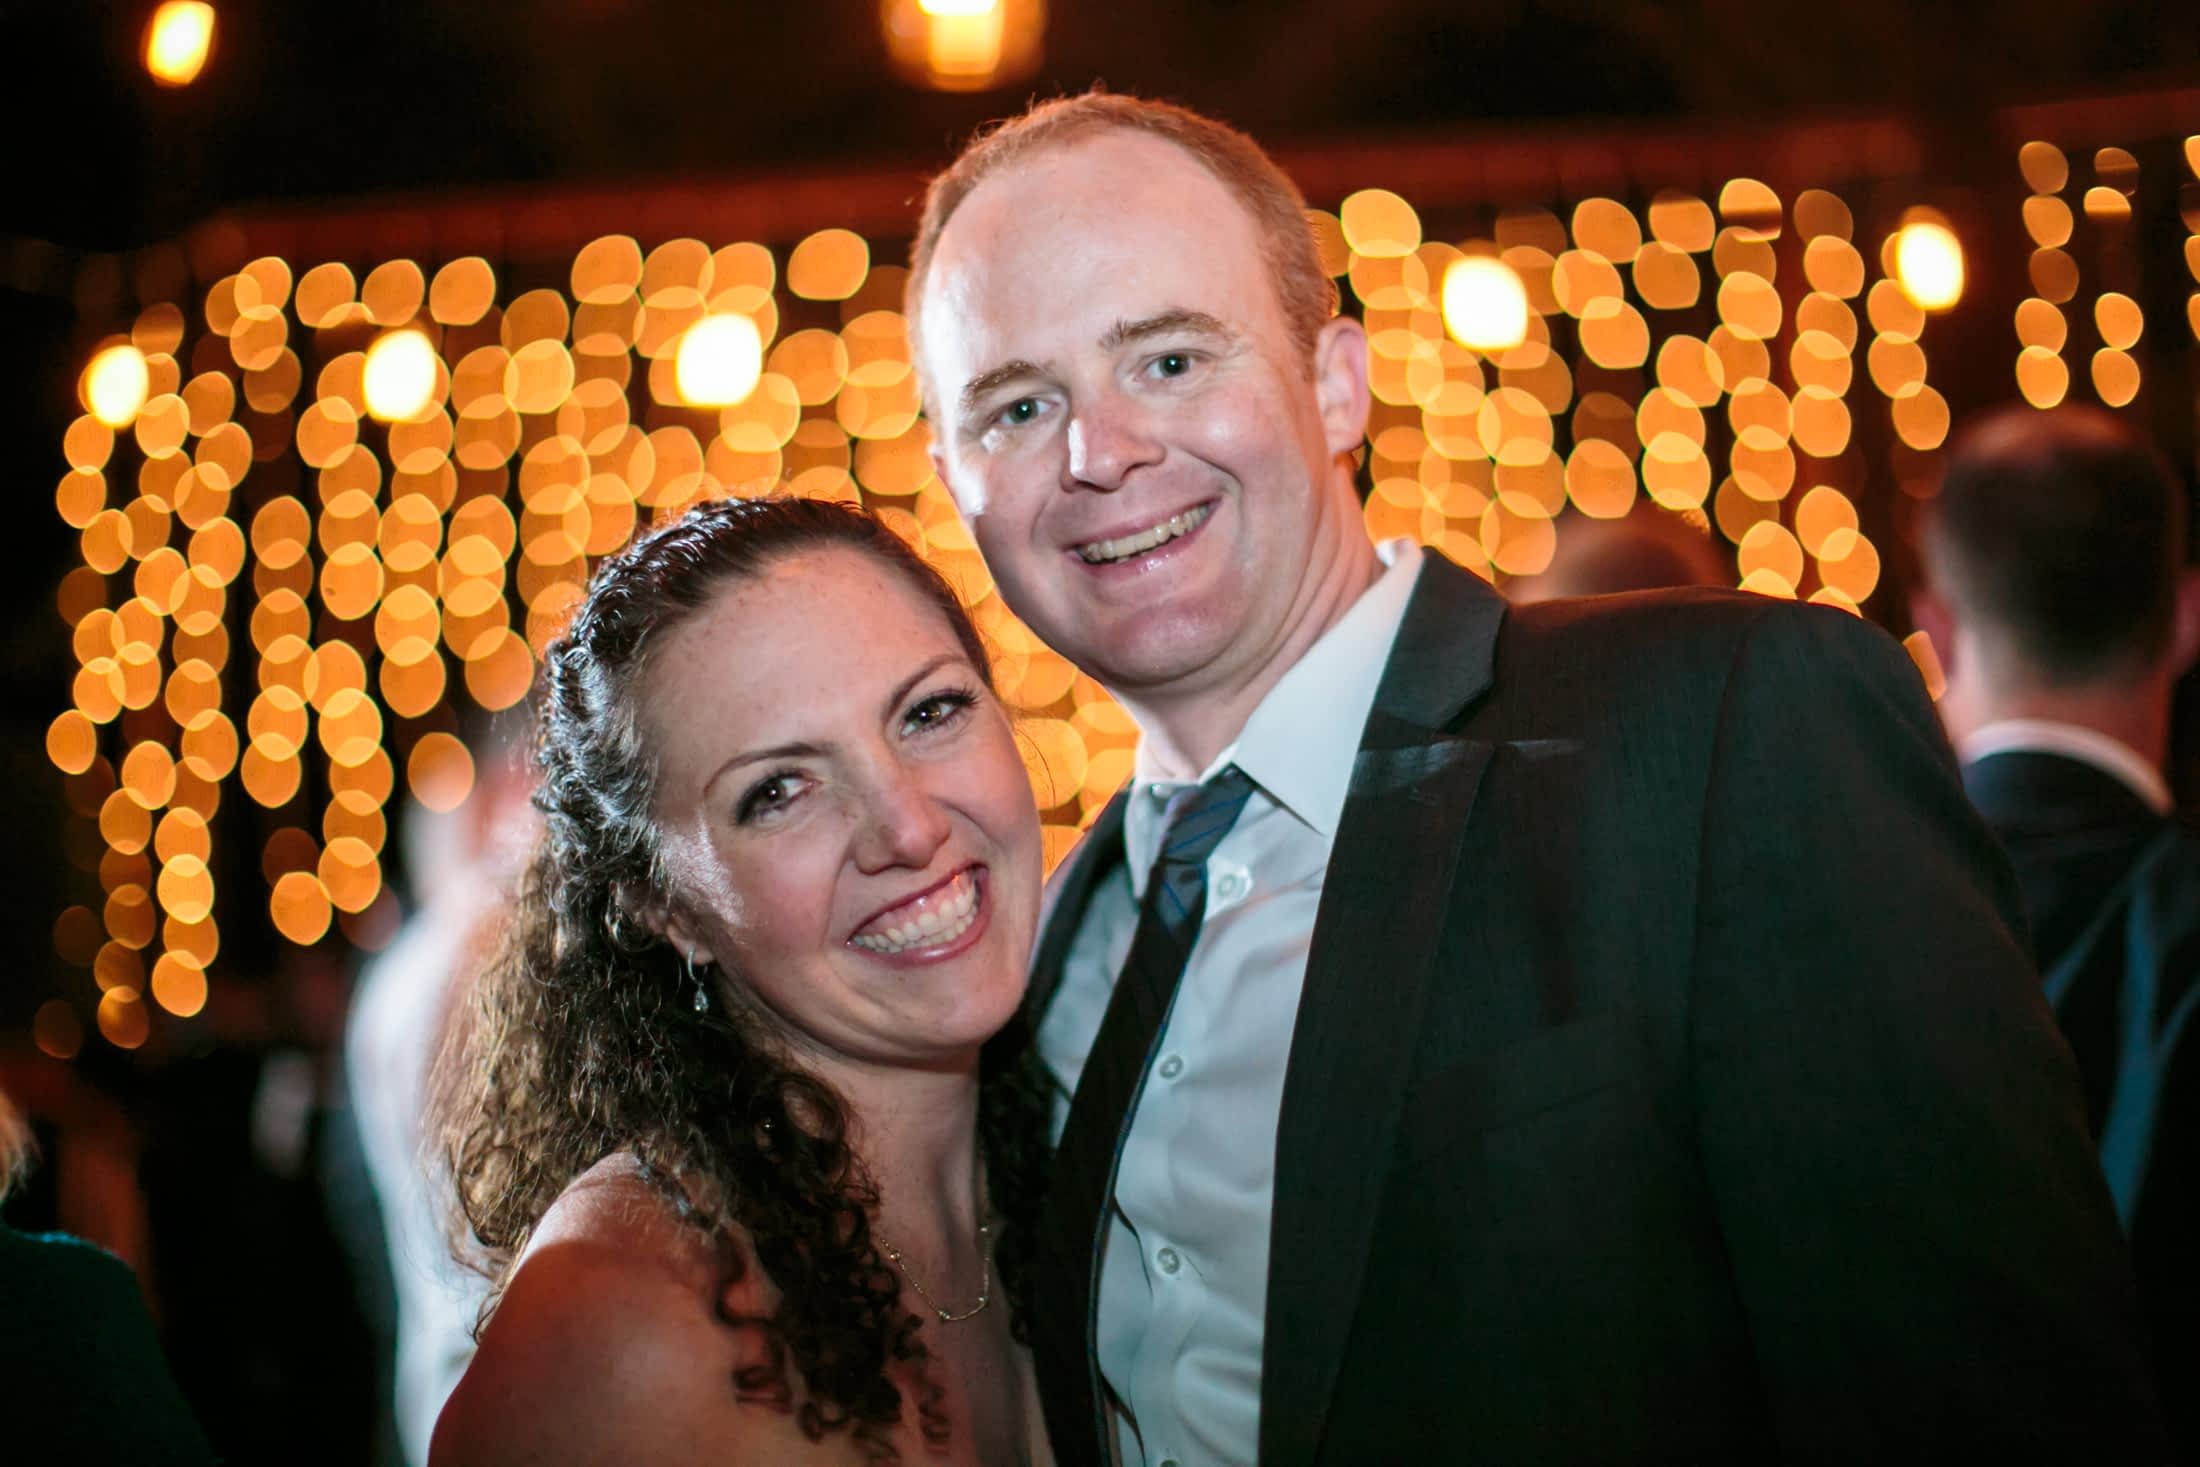 Smiling guests in front of a very sparkly, bokeh background.